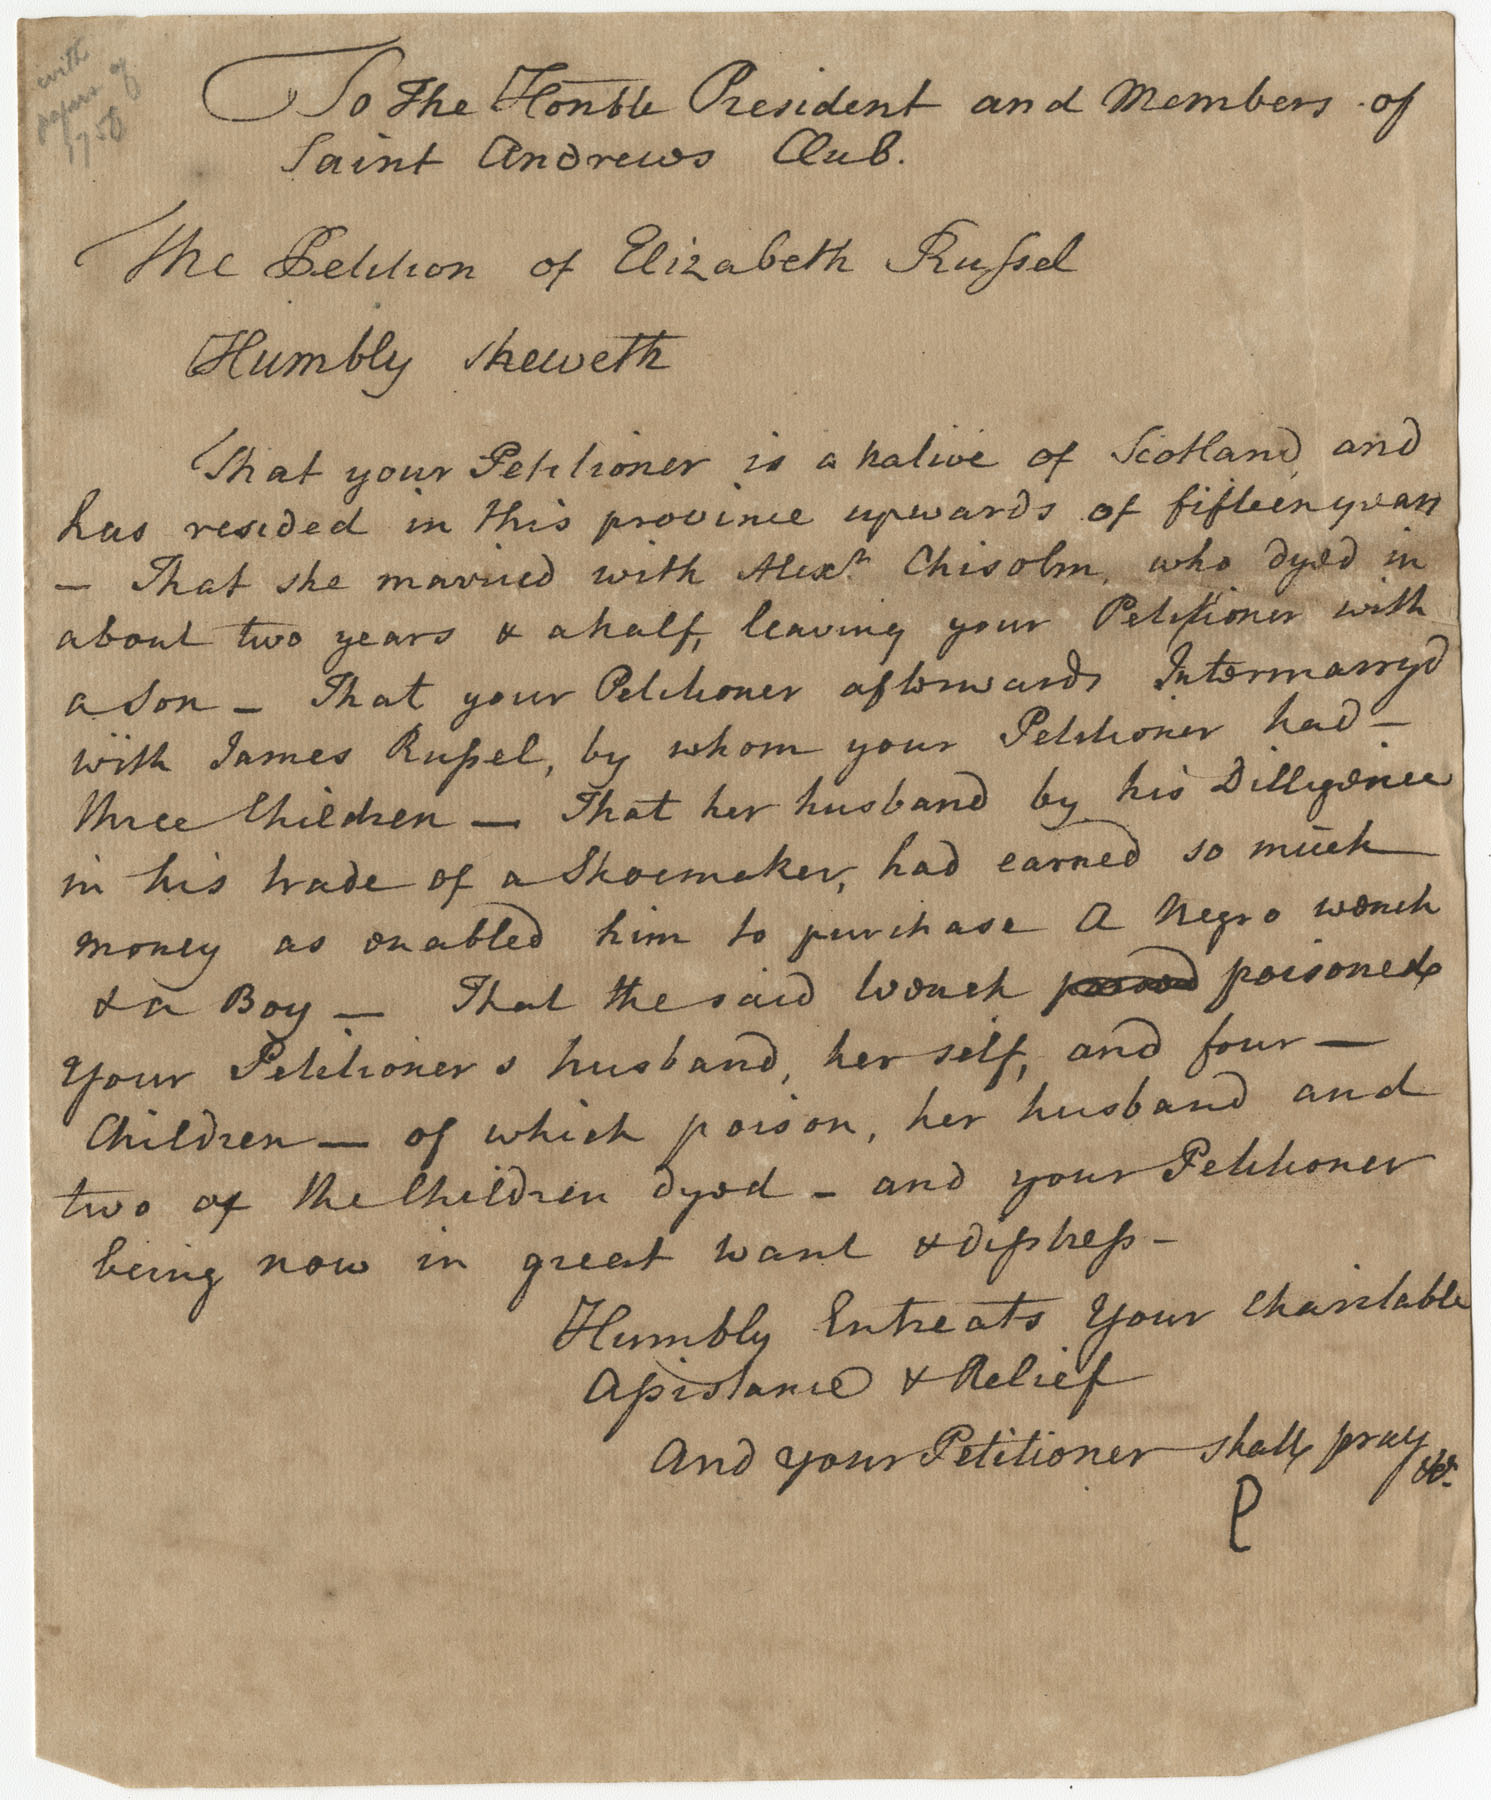 Elizabeth Russel's Petition Letter to the St. Andrew's Society